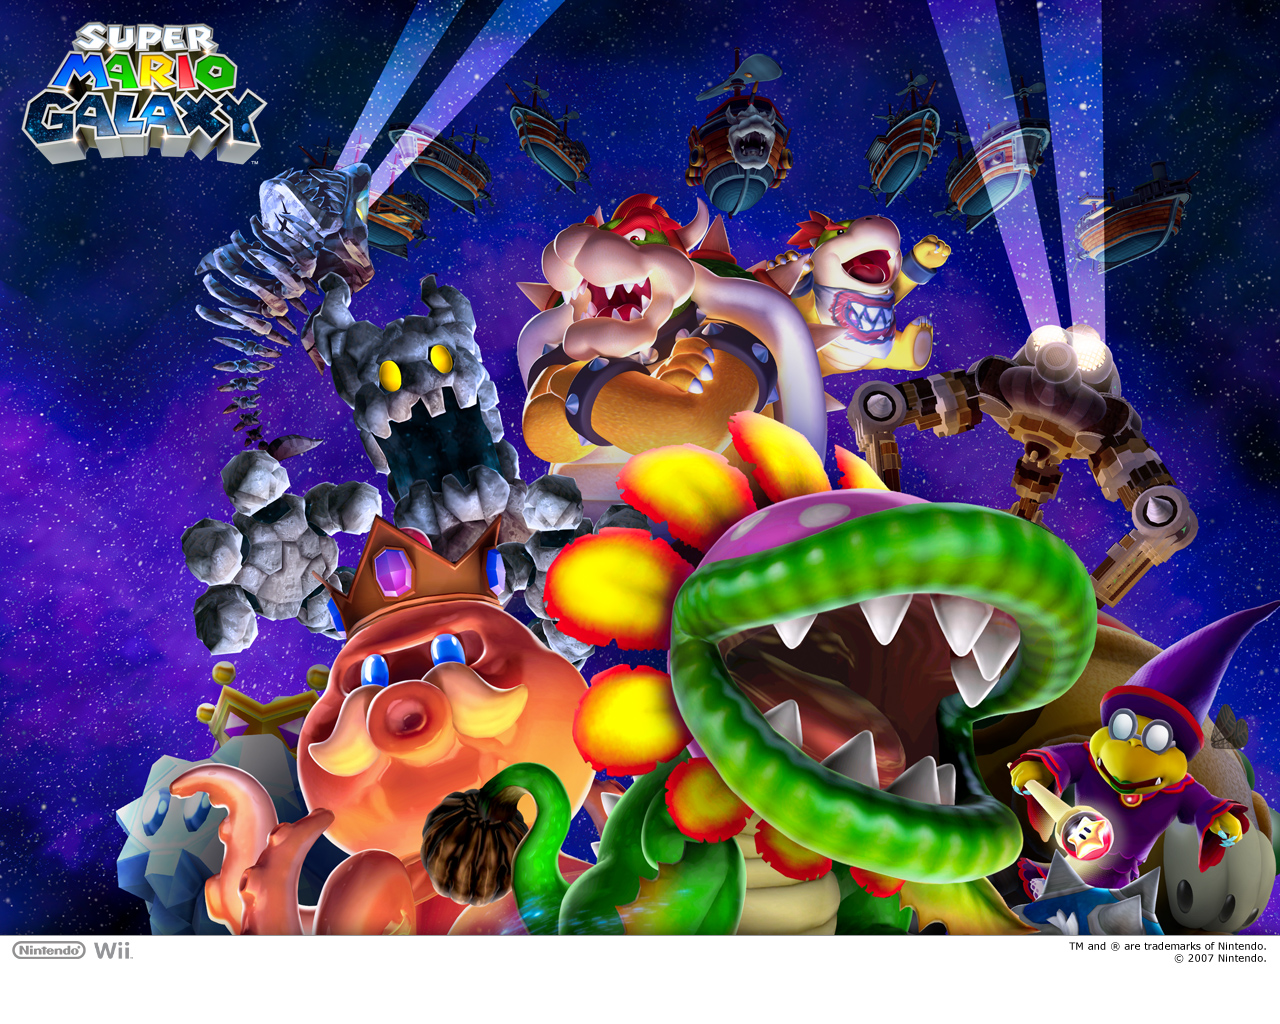 Boss Wallpaper - Super Mario Galaxy 1280x1024